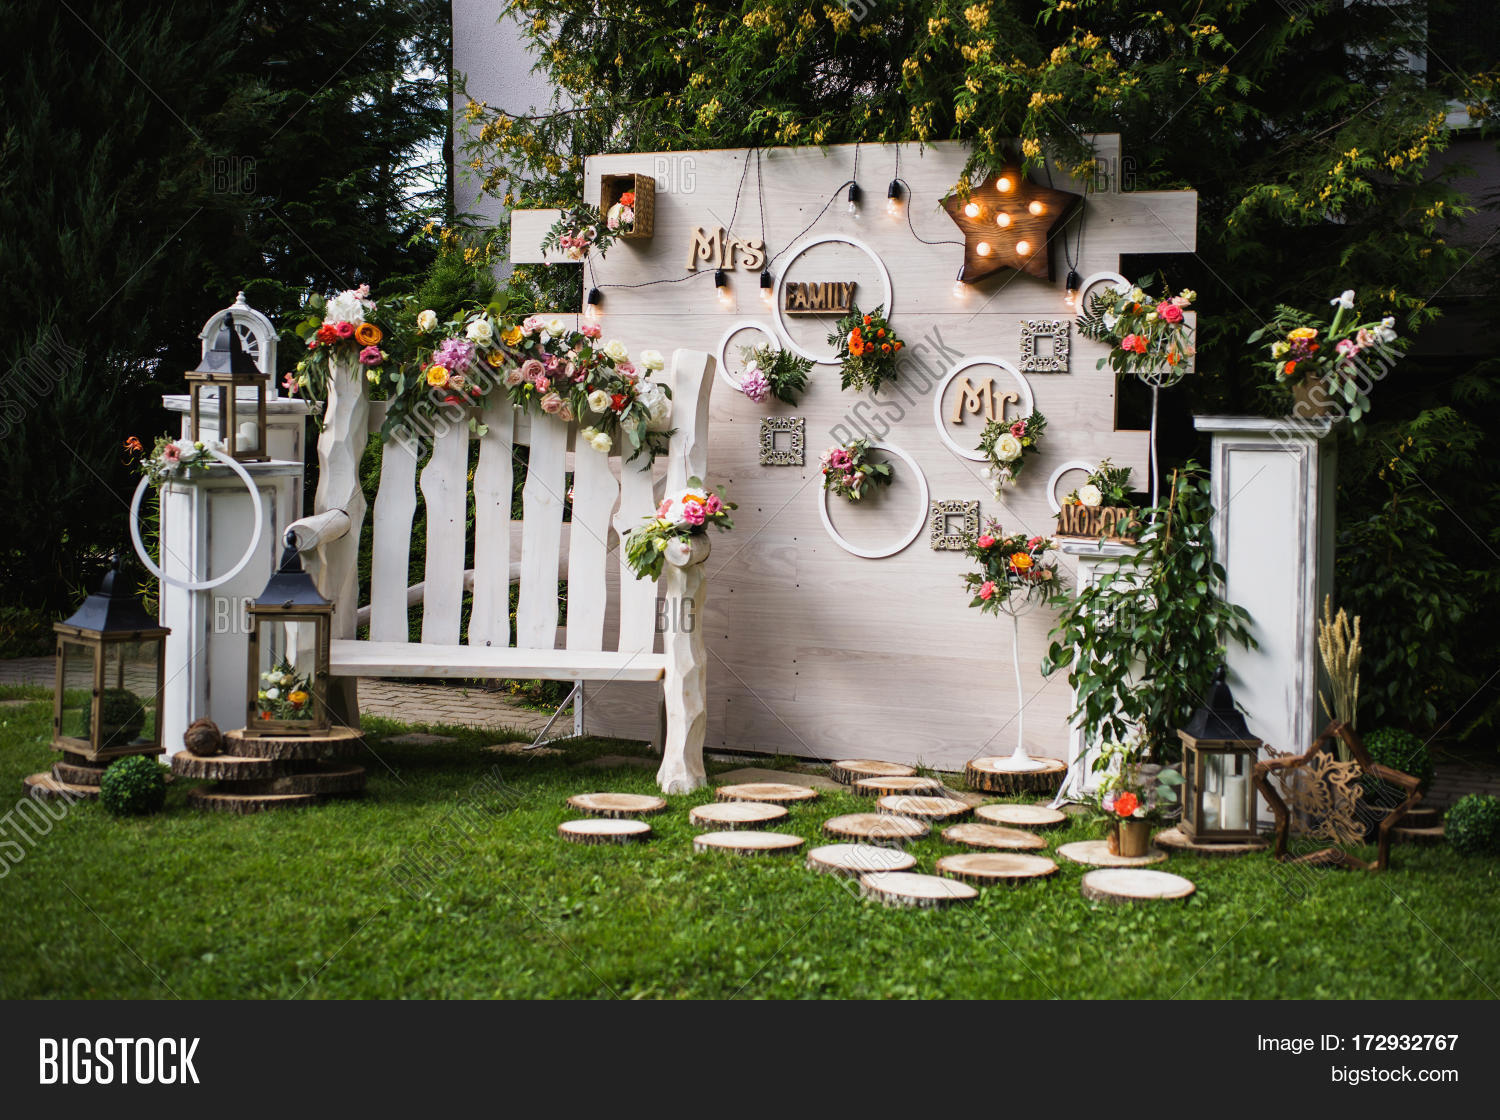 Wedding party image photo free trial bigstock wedding party beautiful unusual wedding decor rustic style bench wall of flowers lanterns junglespirit Image collections